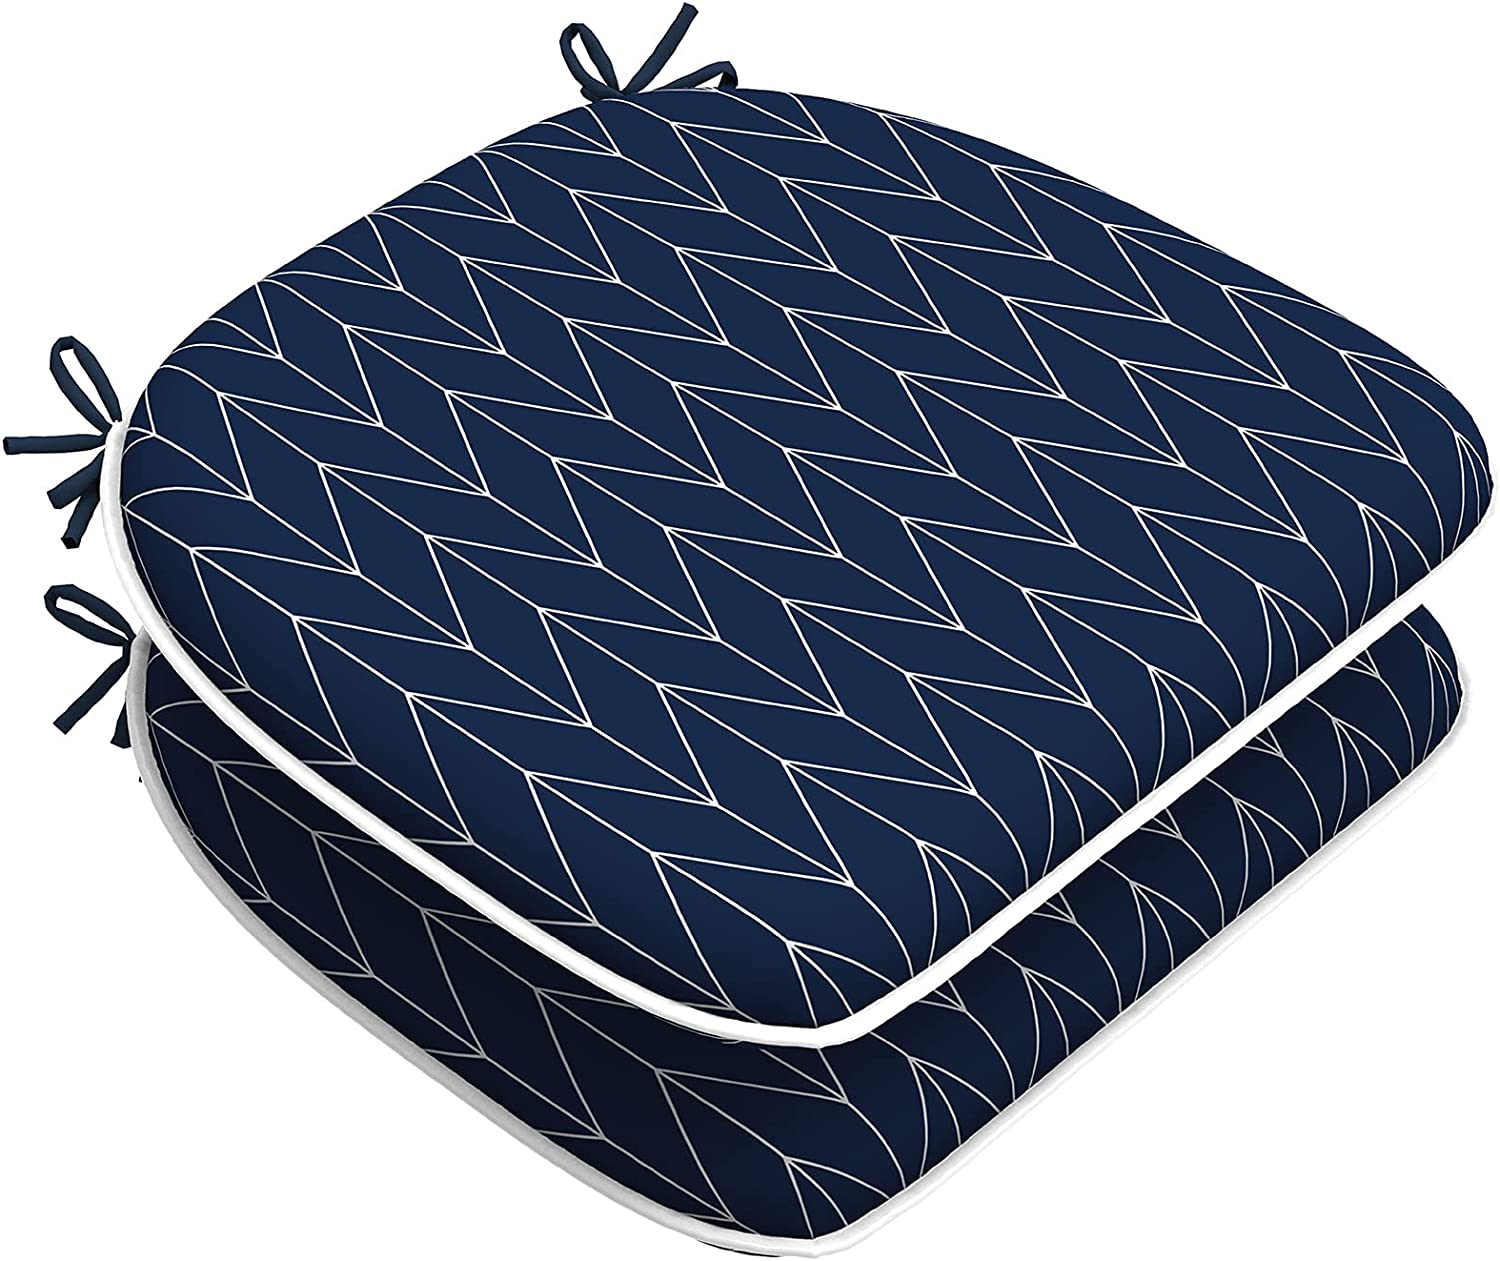 LVTXIII Patio Seat Cushions Outdoor Genuine Free Shipping Chair Pads Ties Fade-R Brand Cheap Sale Venue with